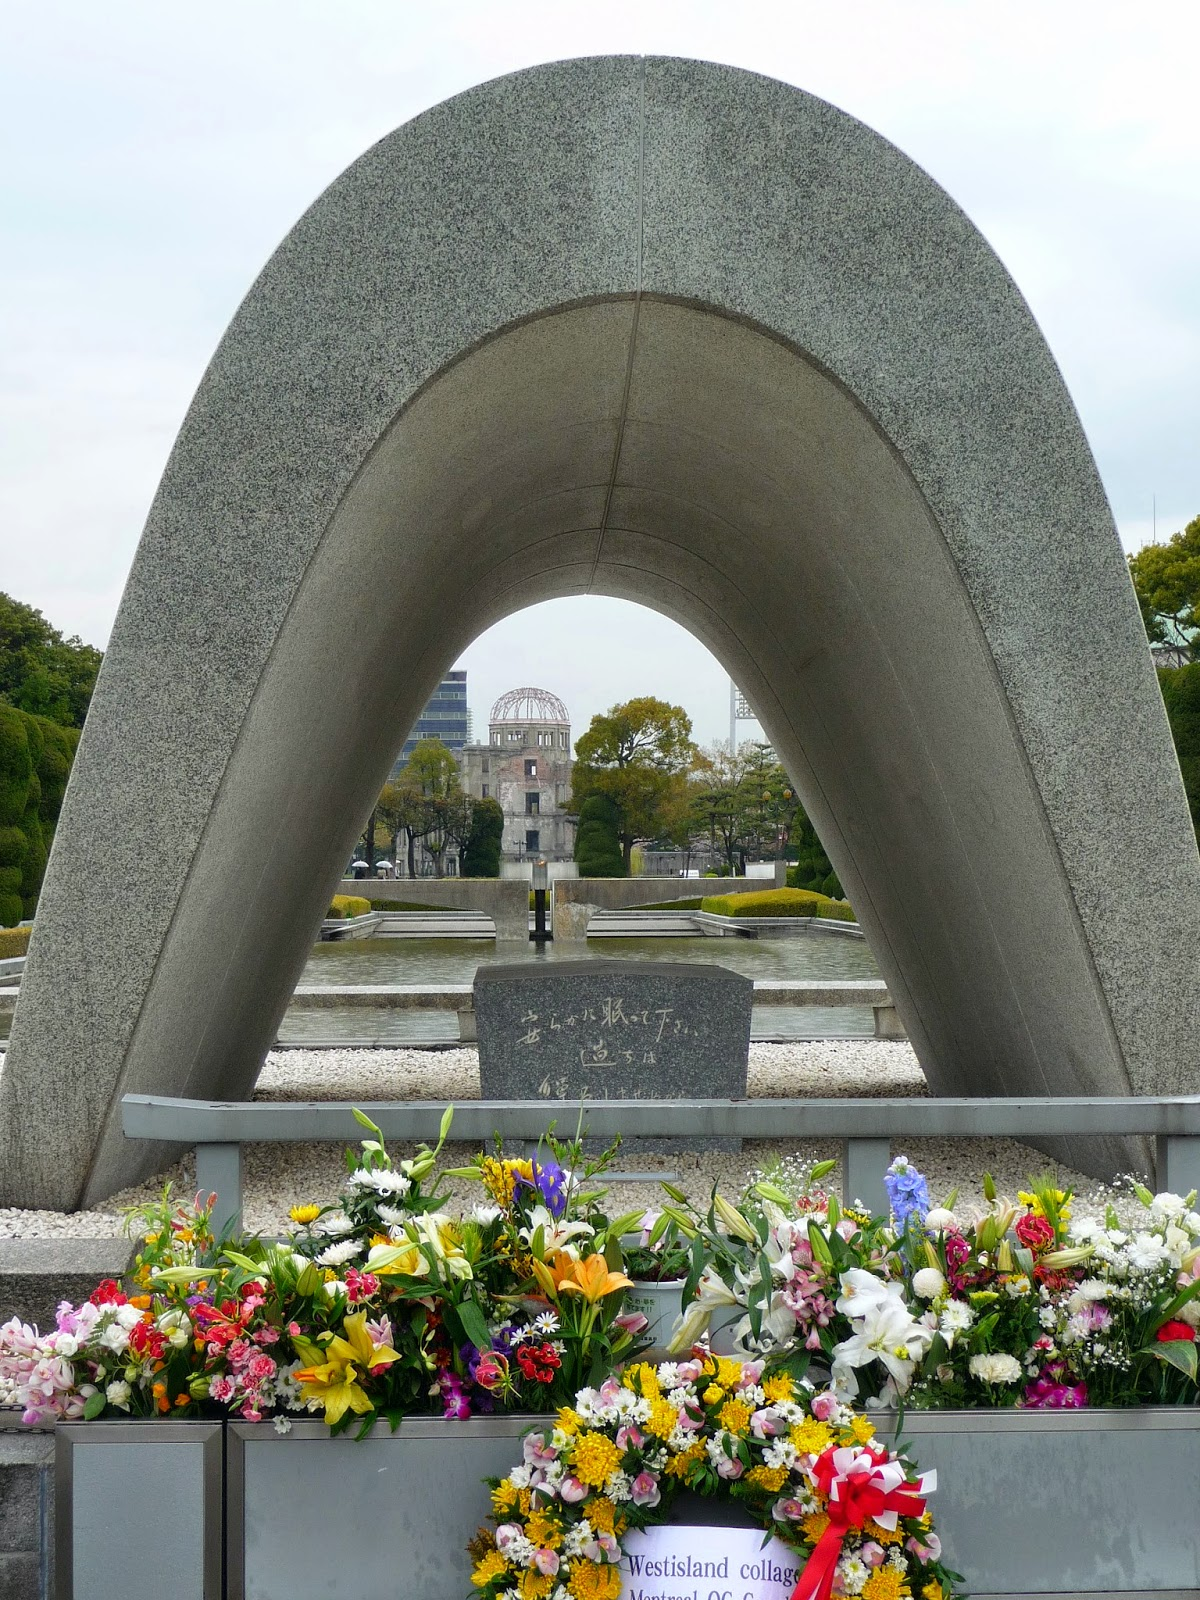 5 Years Ago in Hiroshima - Hiroshima Peace Memorial Park